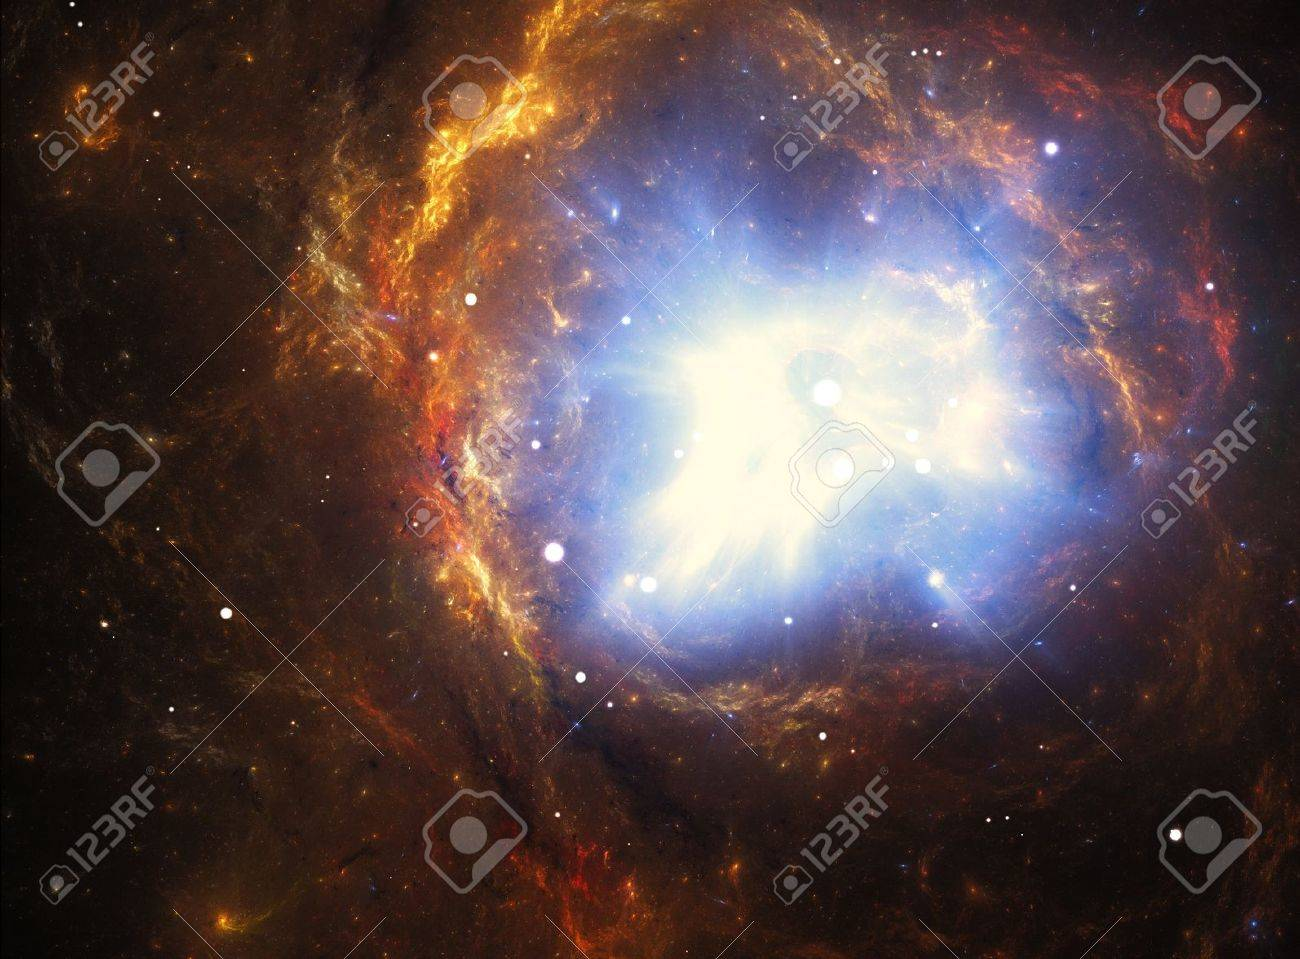 Colorful nebula created by a supernova explosion Stock Photo - 16643260